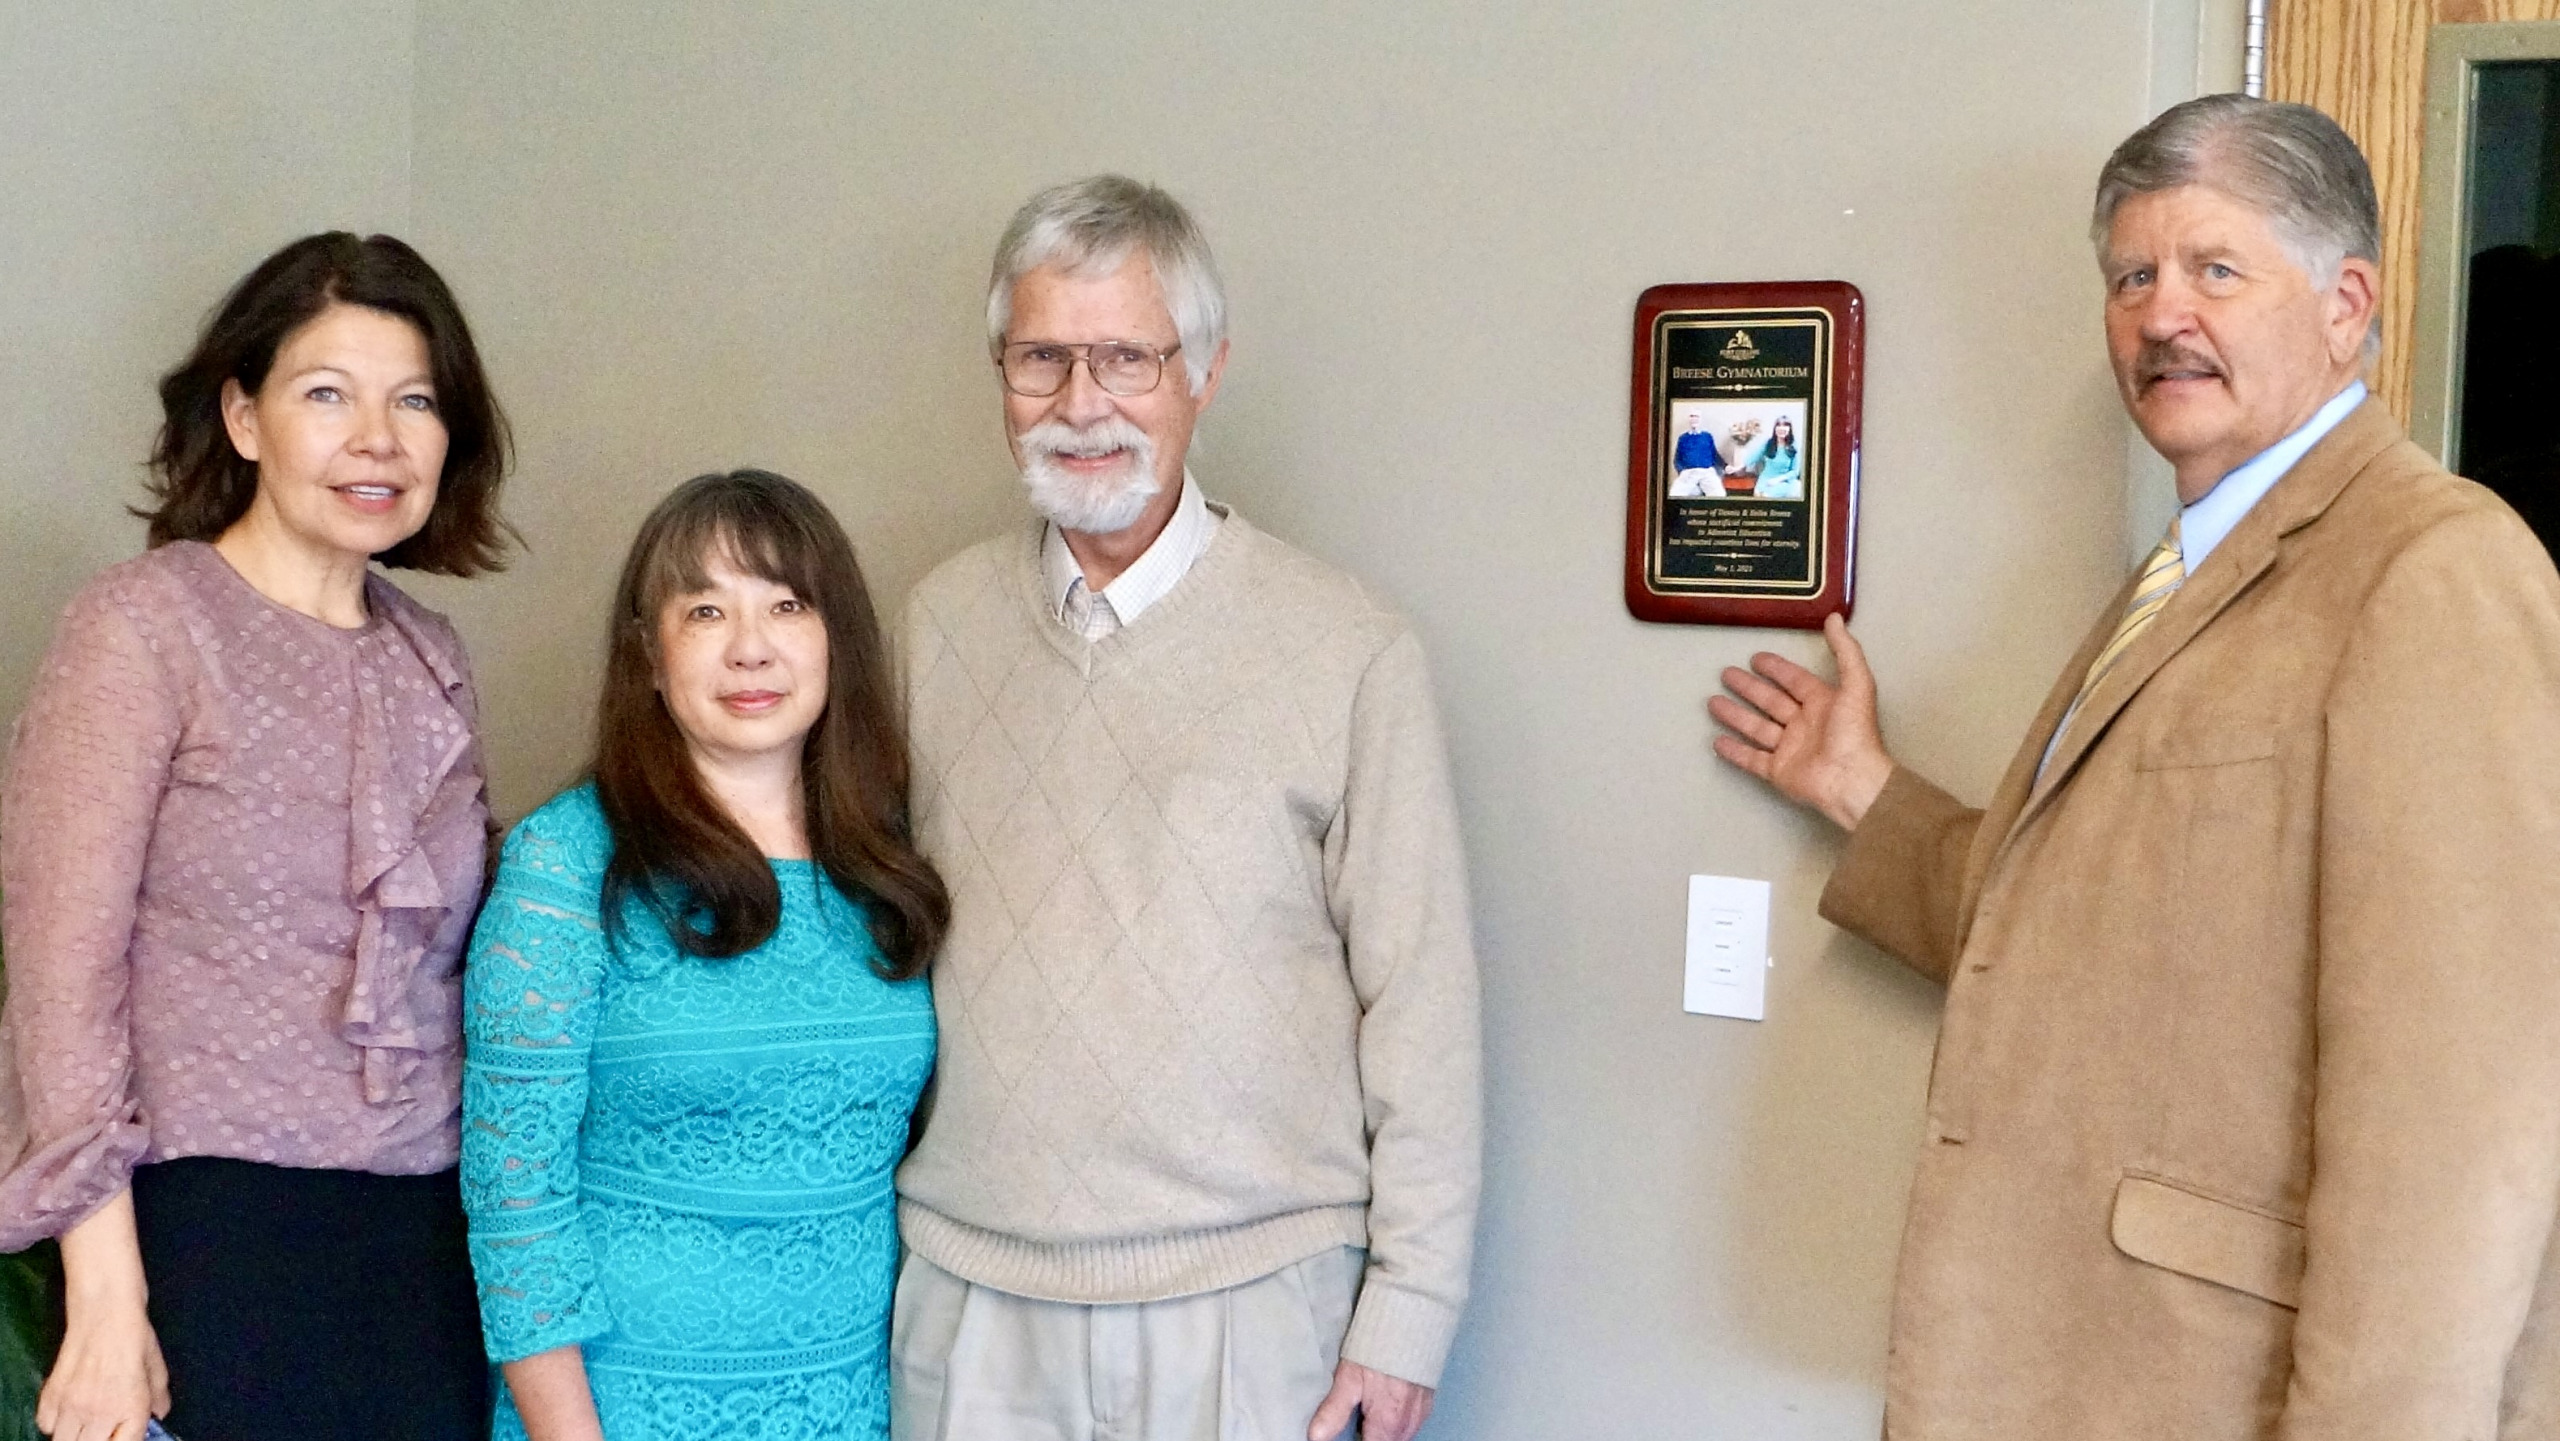 FORT COLLINS BIDS FAREWELL TO DENNIS BREESE AFTER 19 YEARS OF MINISTRY